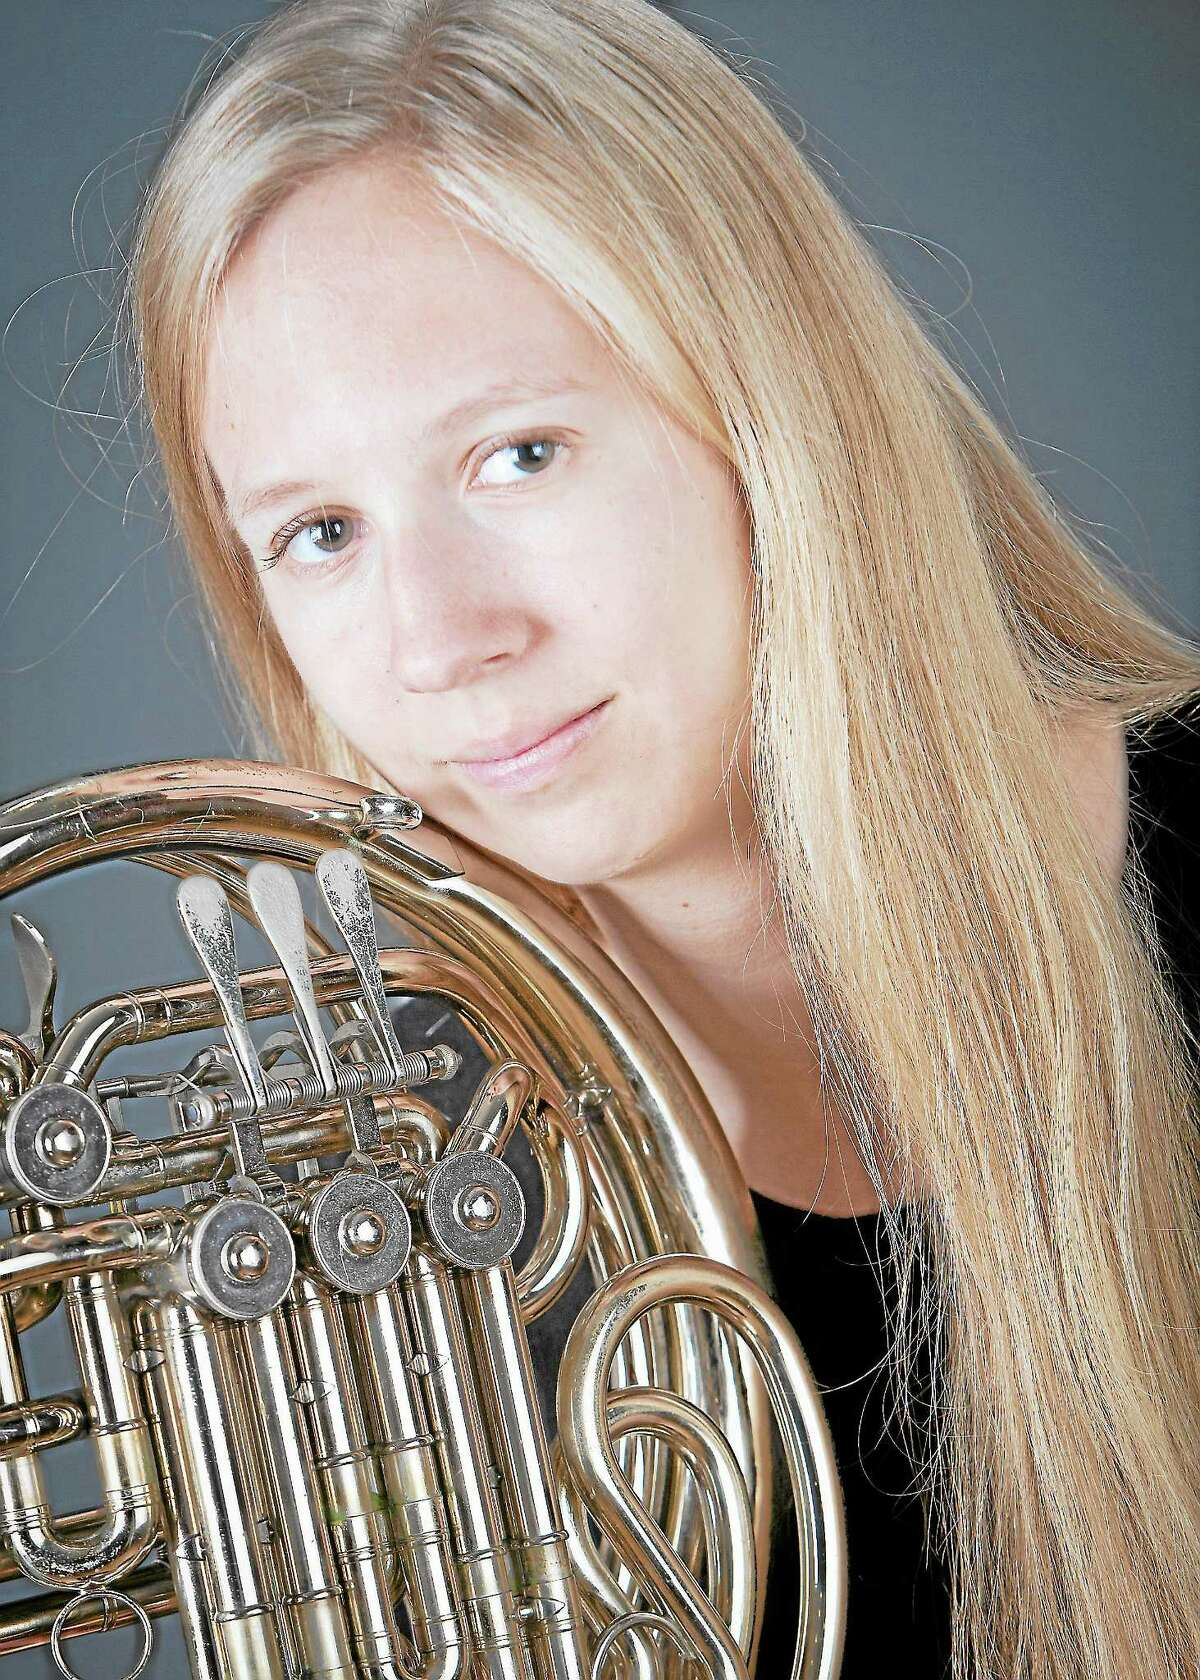 Eleanor Johnson will perform in the 2013 National Honors Ensembles at the Gaylord Opryland Hotel in Nashville on Oct. 30.